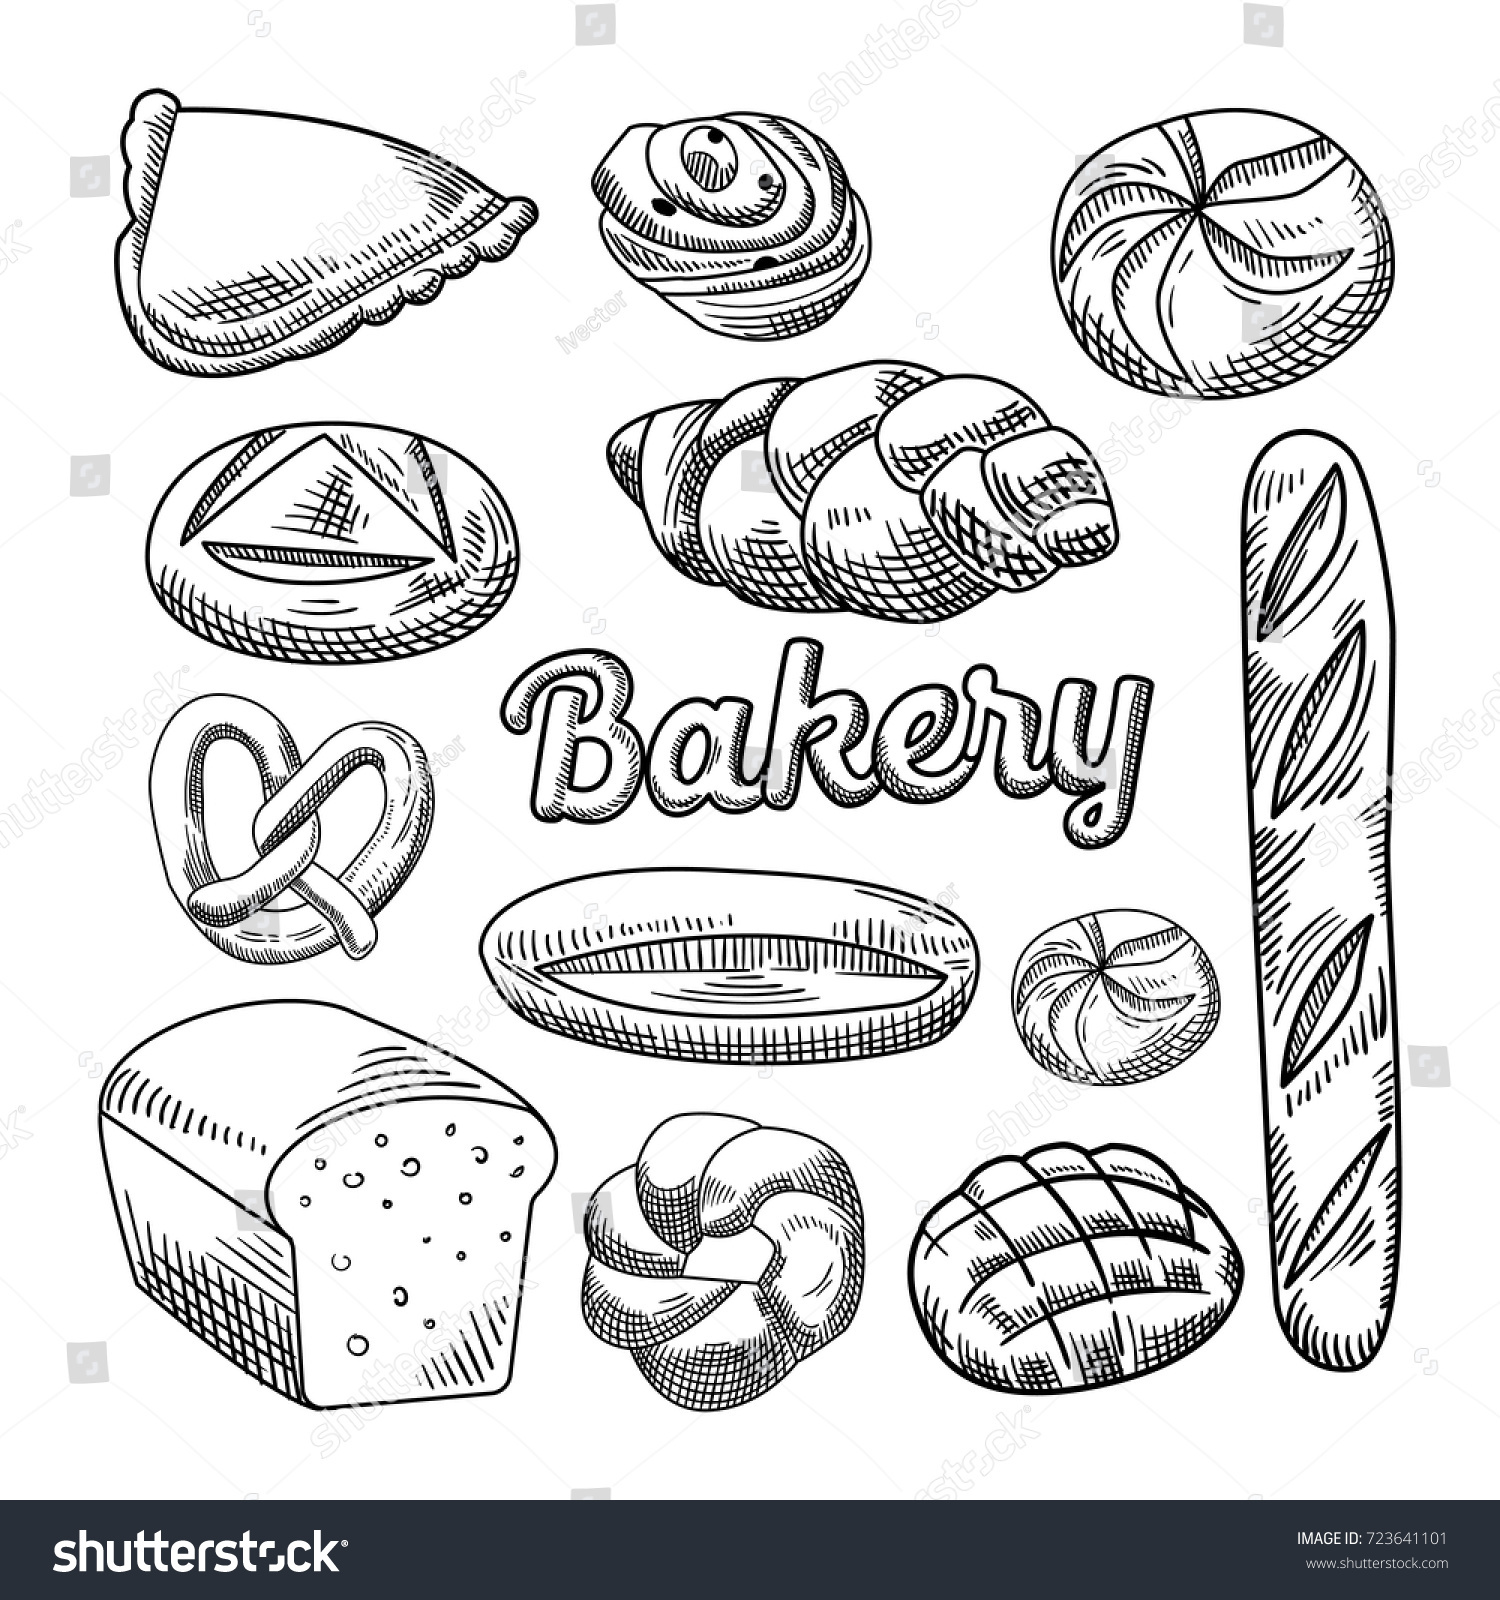 Bread Bakery Food Hand Drawn Doodle Stock Vector 723641101 ...